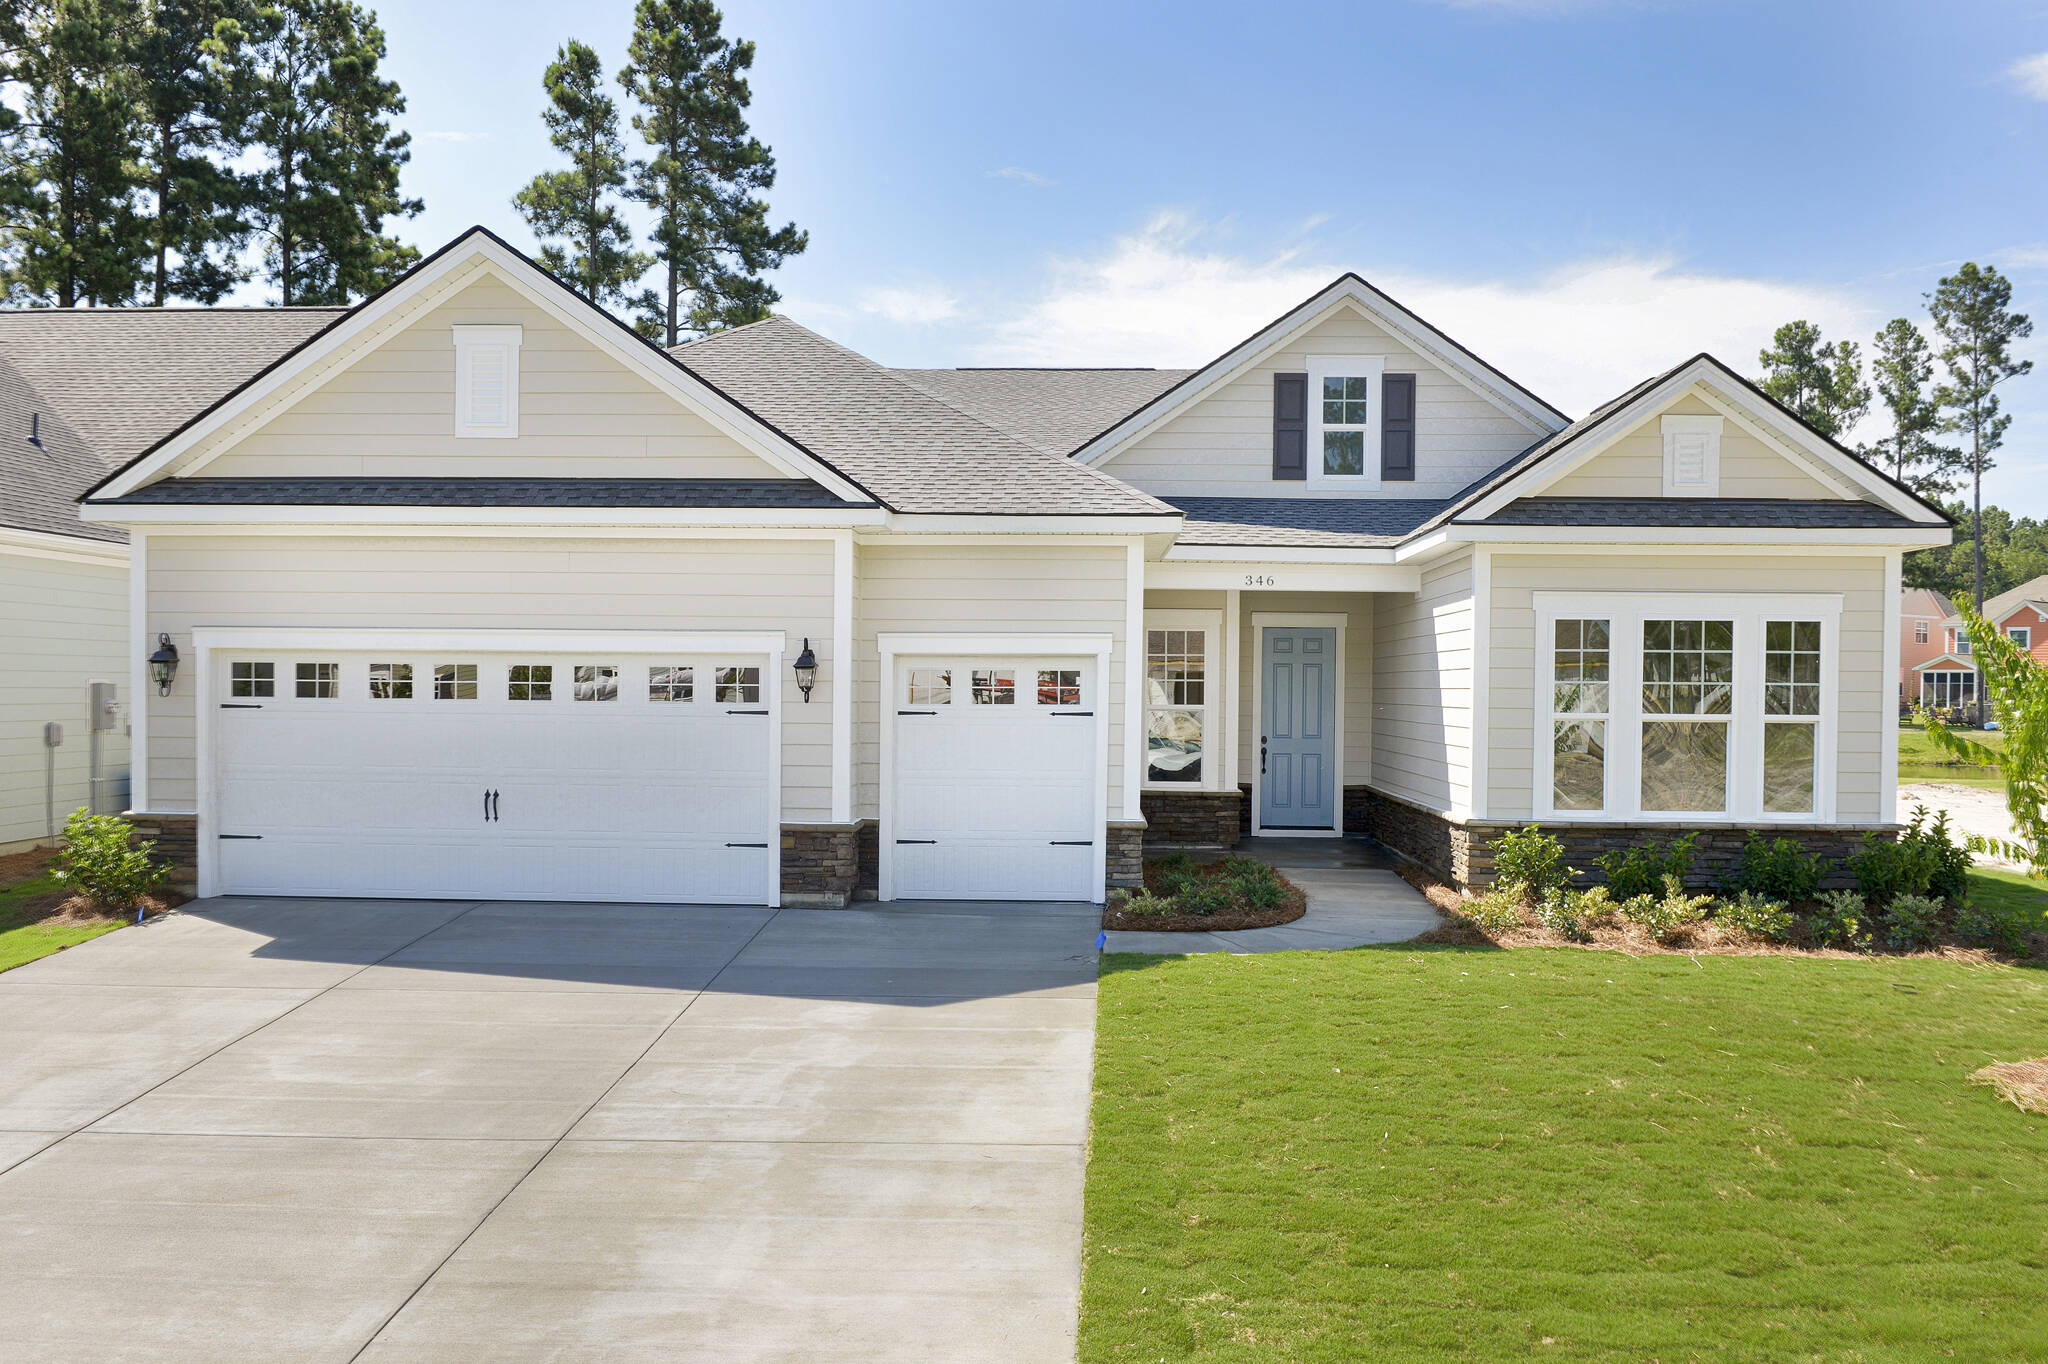 ext1 porto 346 es lot 172 new homes at cane bay